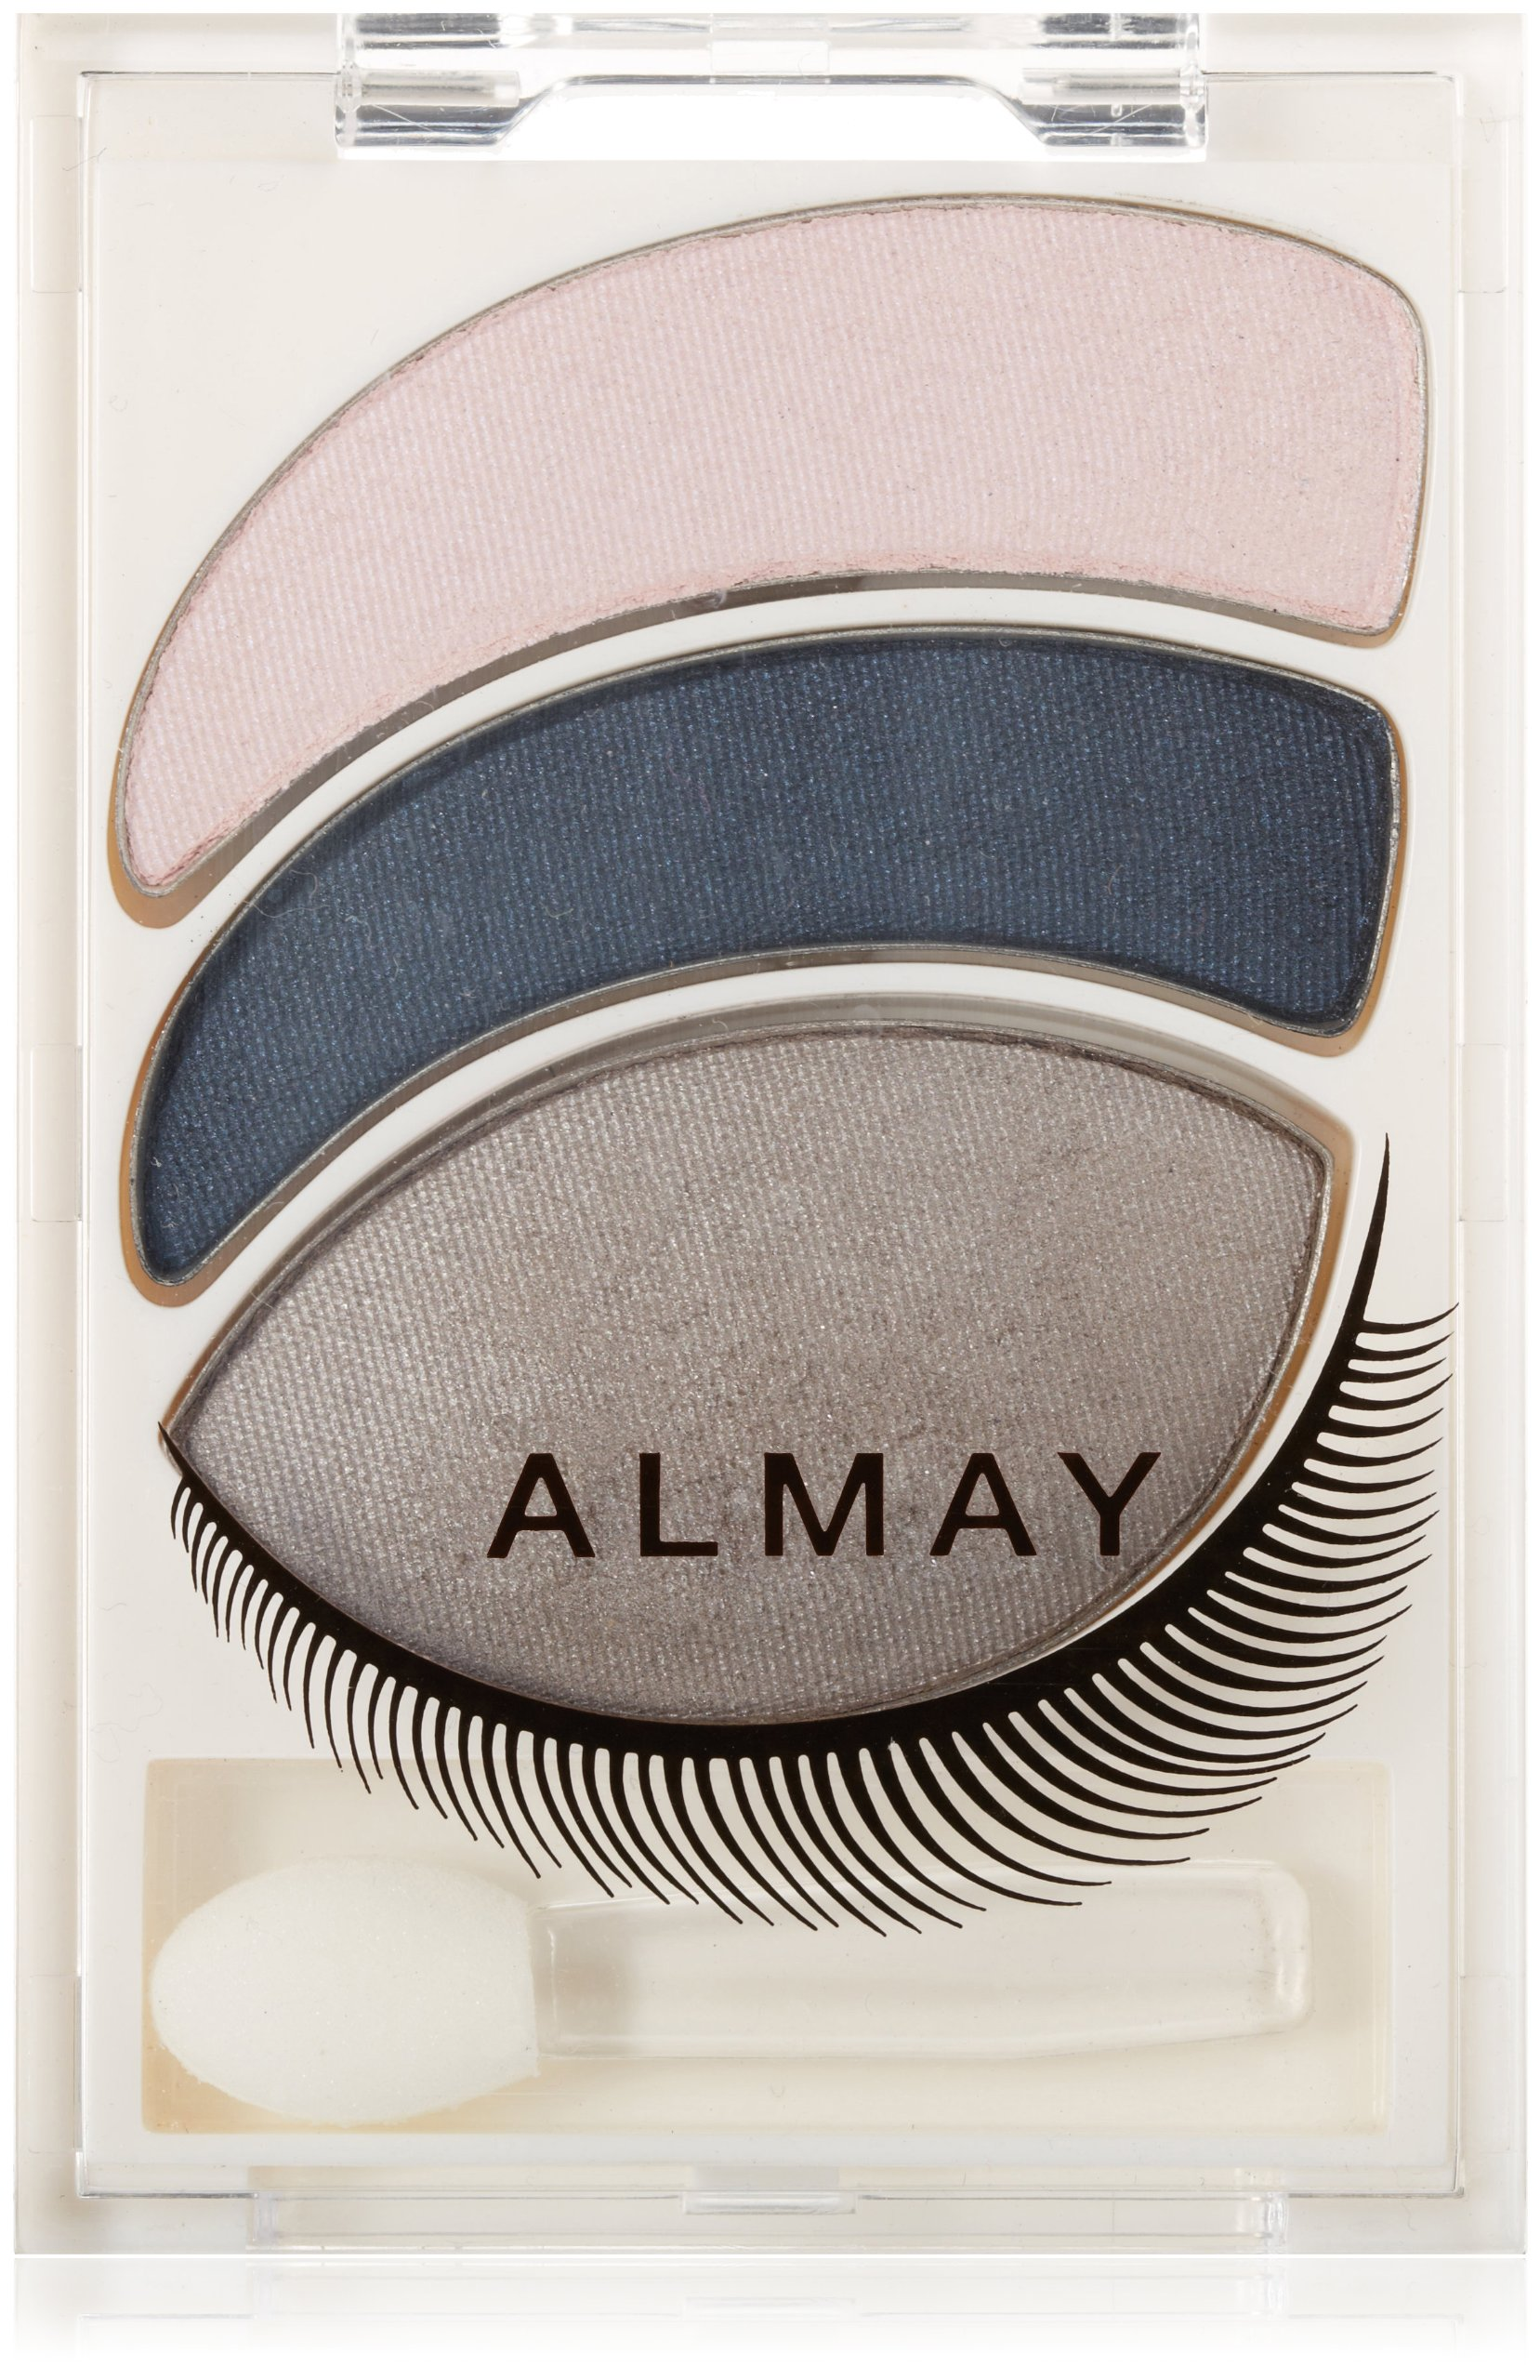 ALMAY Intense I-Color Shimmer-I Kit, Blue